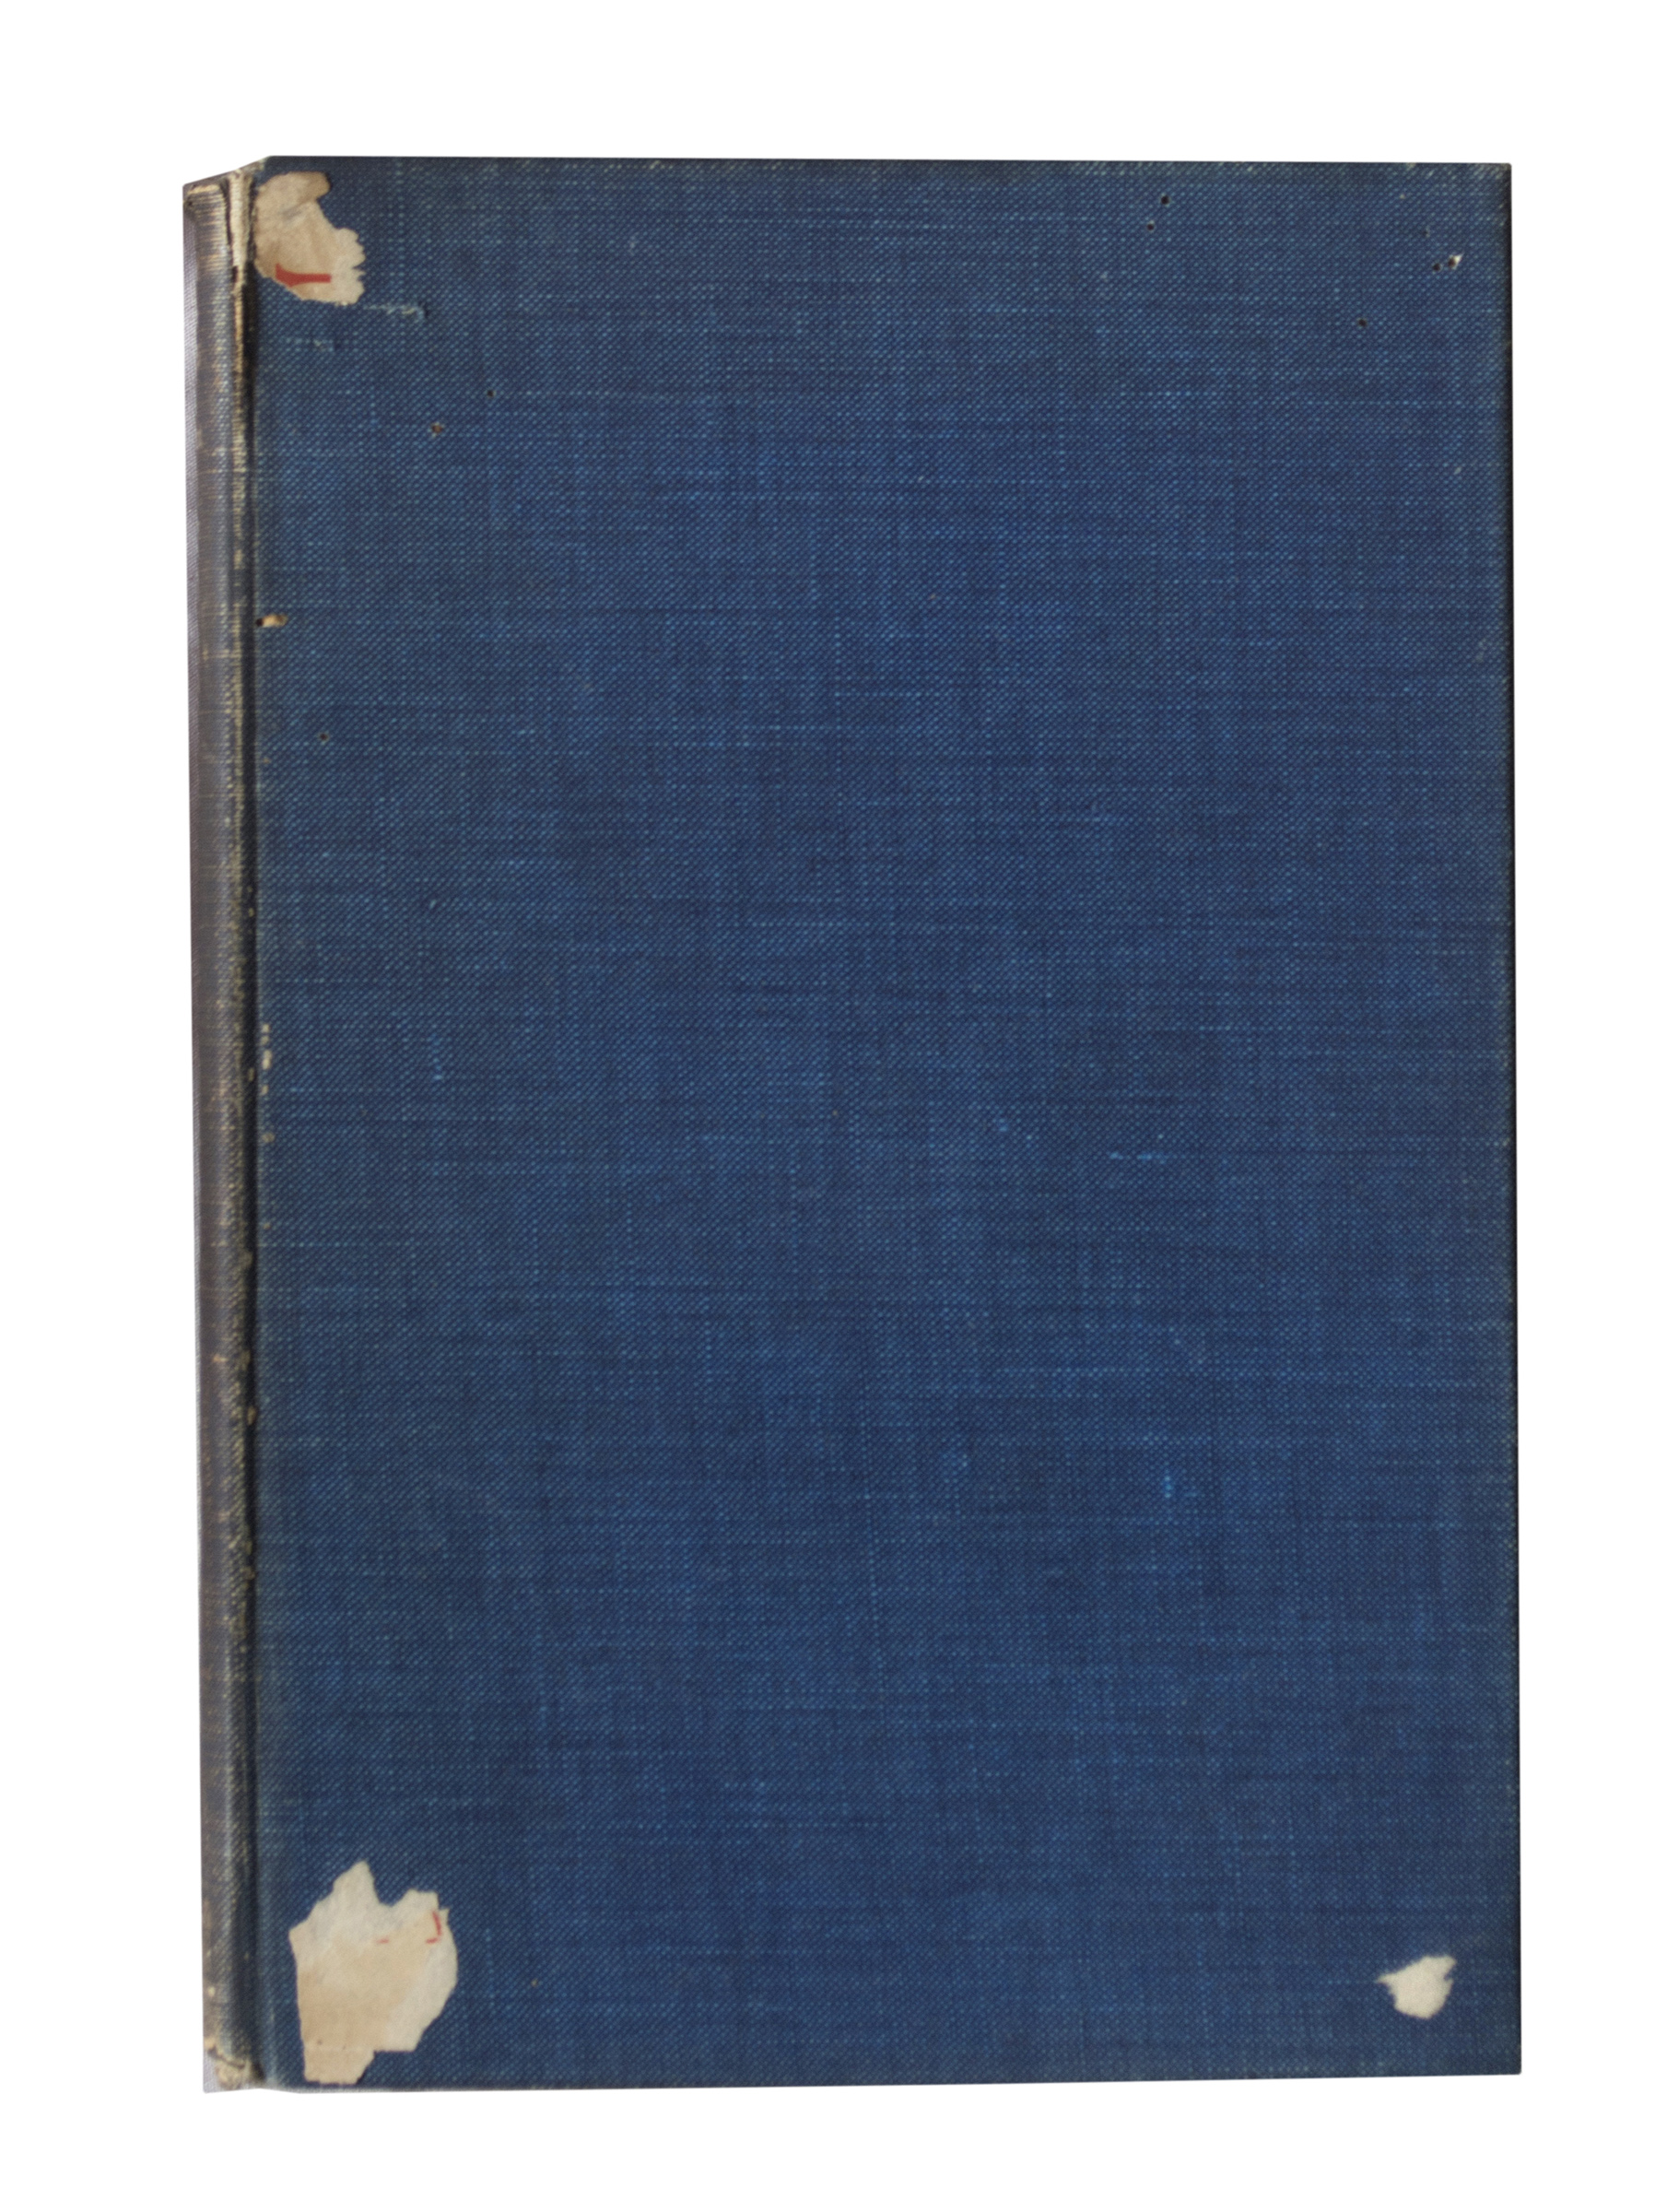 Collected Poems (1909-1935) by TS Eliot